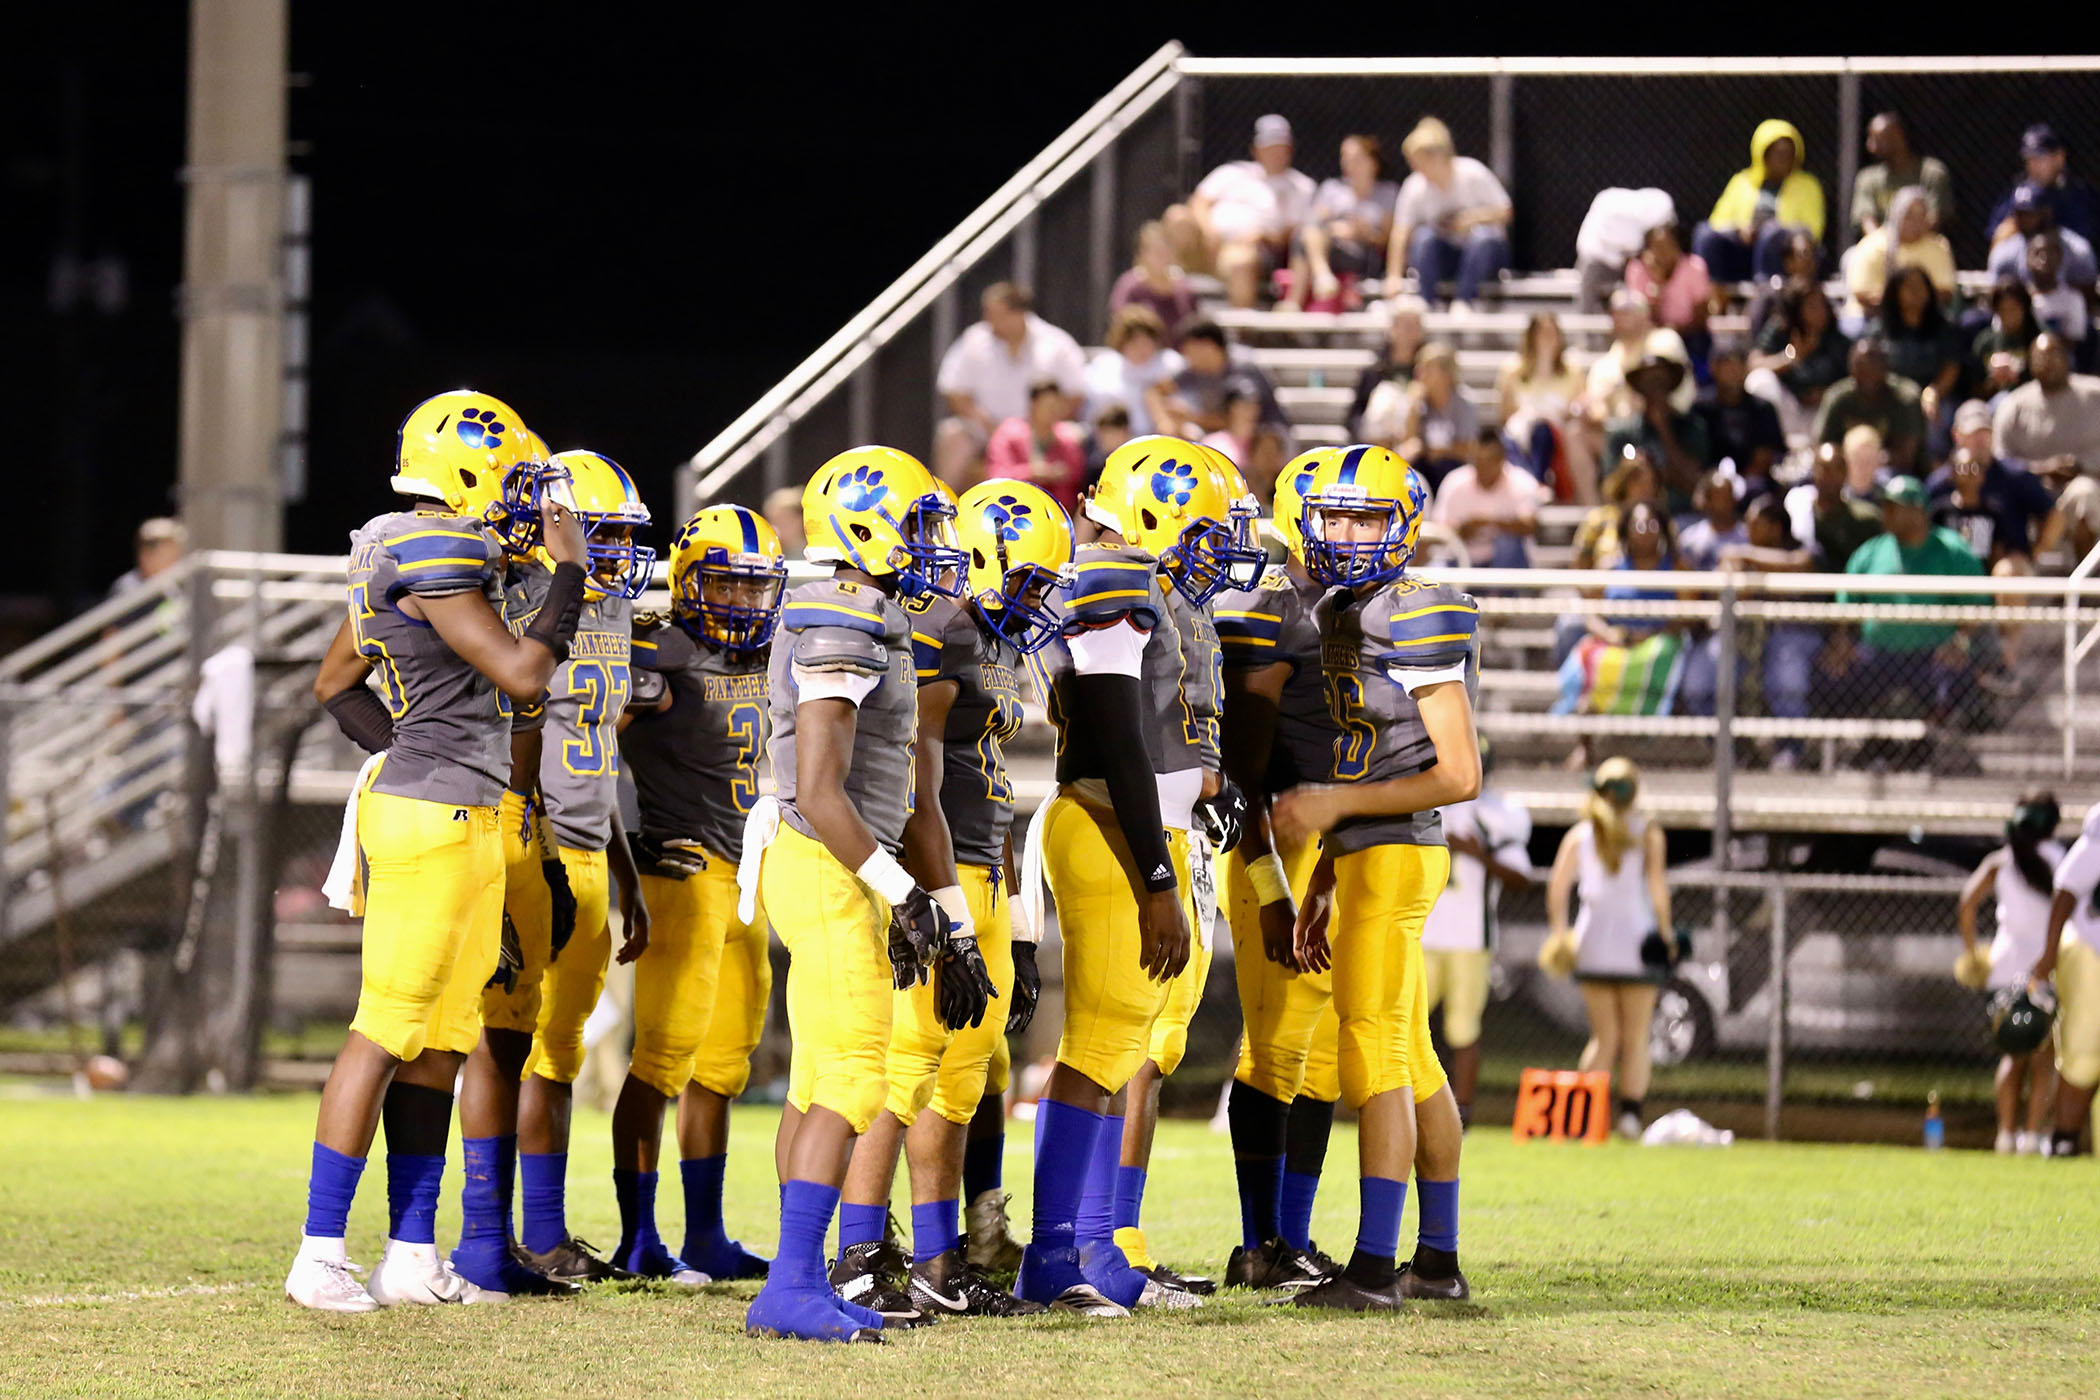 Panther Football huddles during a game.